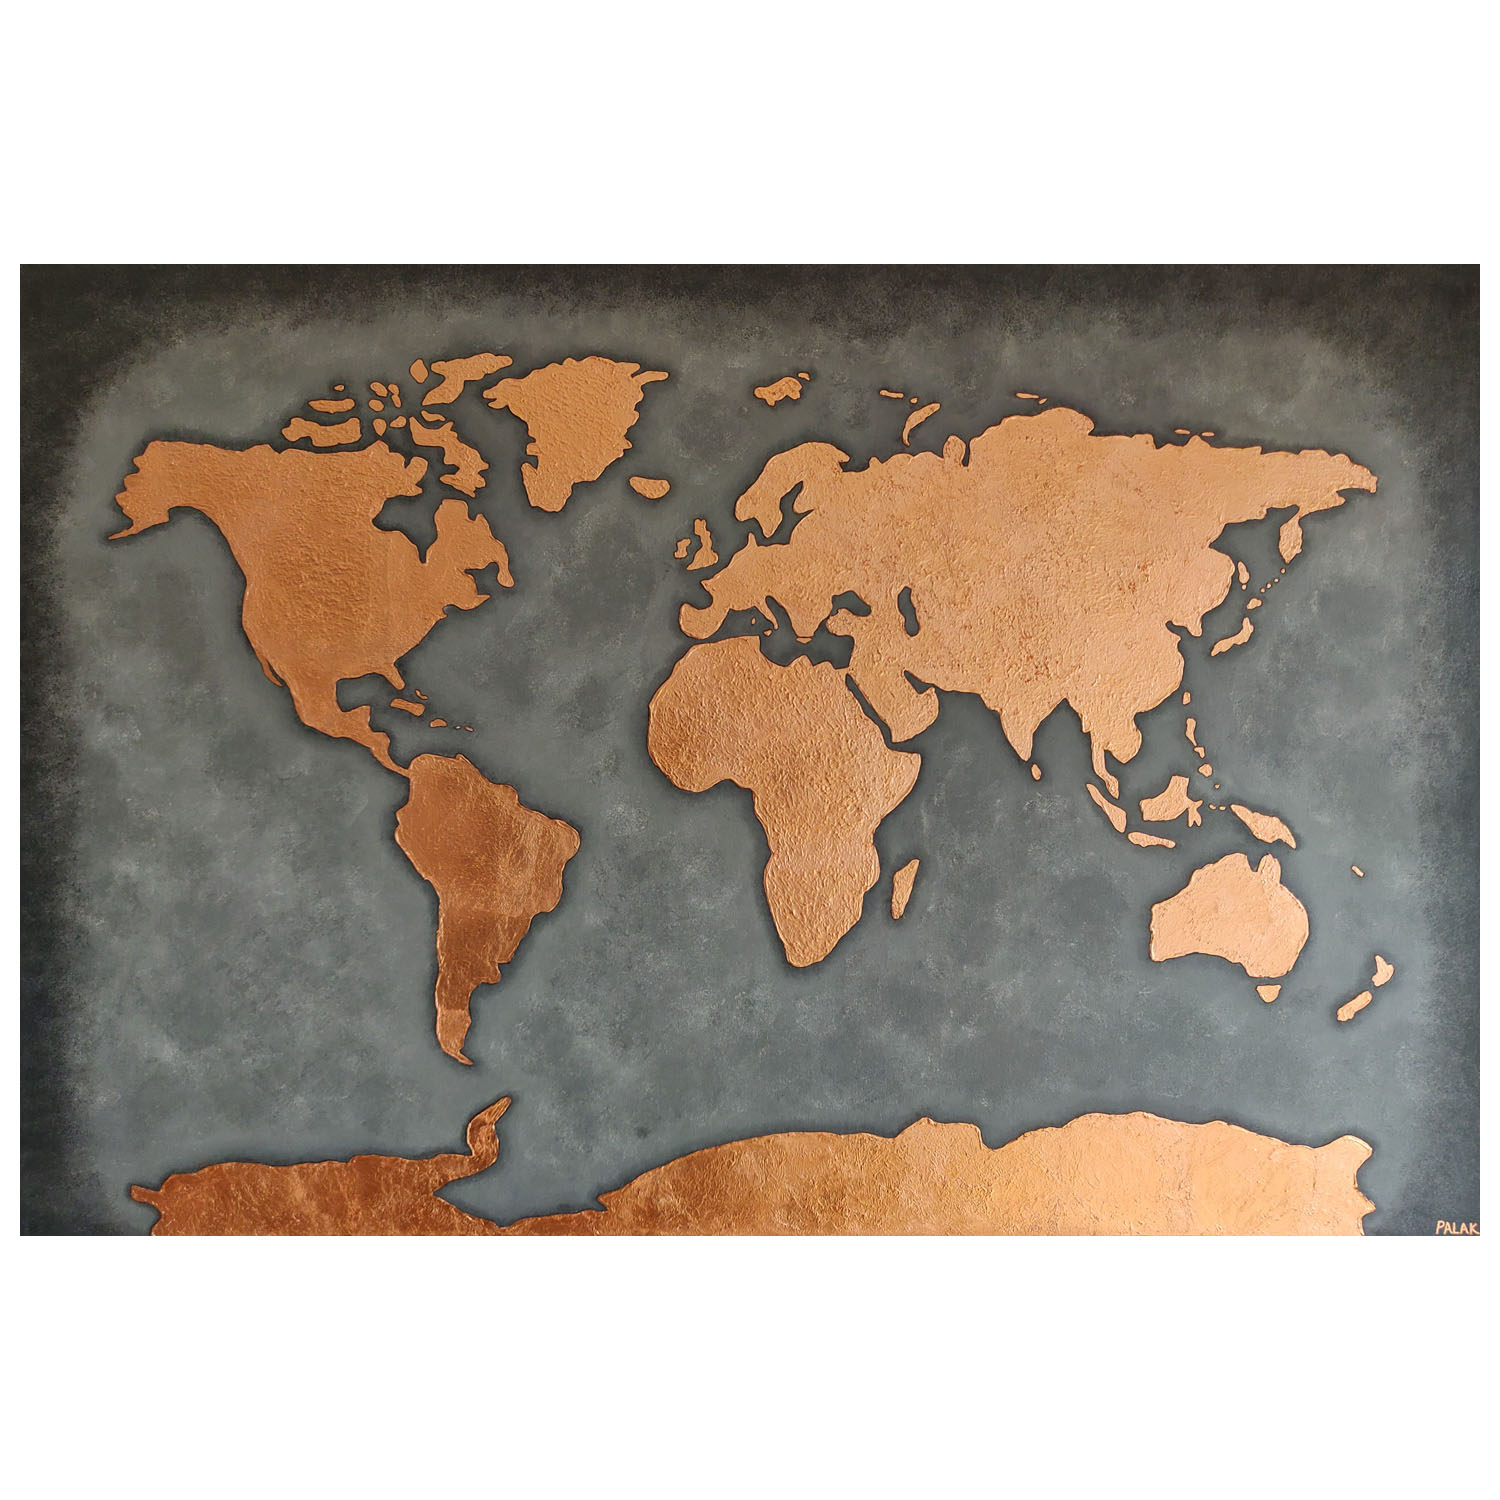 Palak Patel, Copper and Grey World Map, Acrylics and Copper Leaf, 1500mmx1000mm, £495